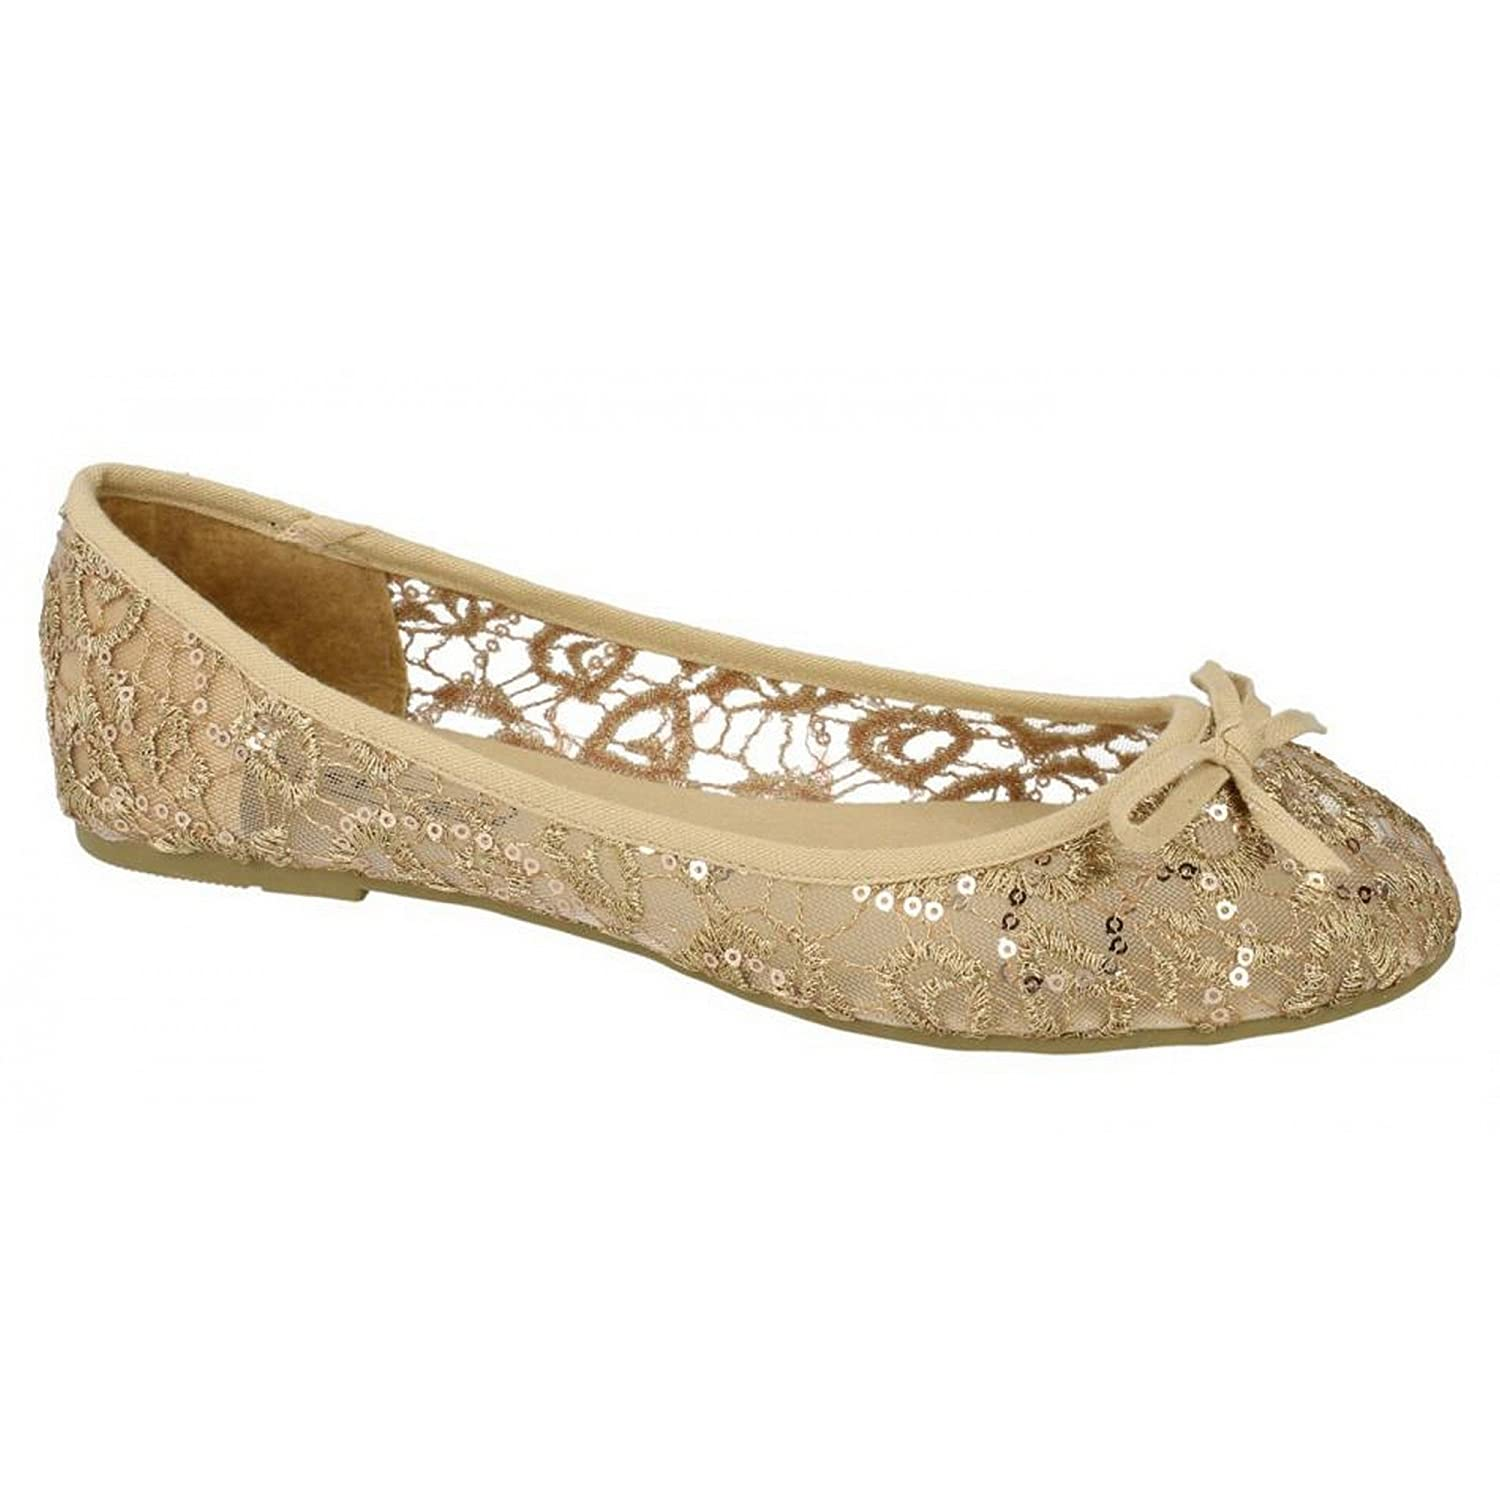 Ladies Spot On Ballerina Style Shoe / Lace Detail: Amazon.co.uk: Shoes &  Bags